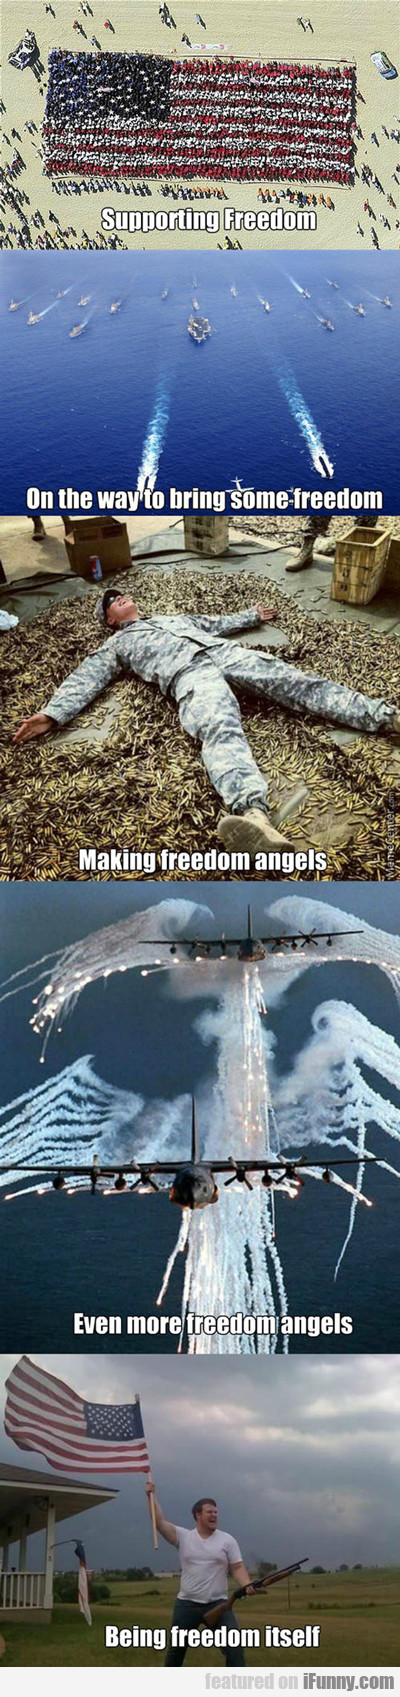 supporting freedom...